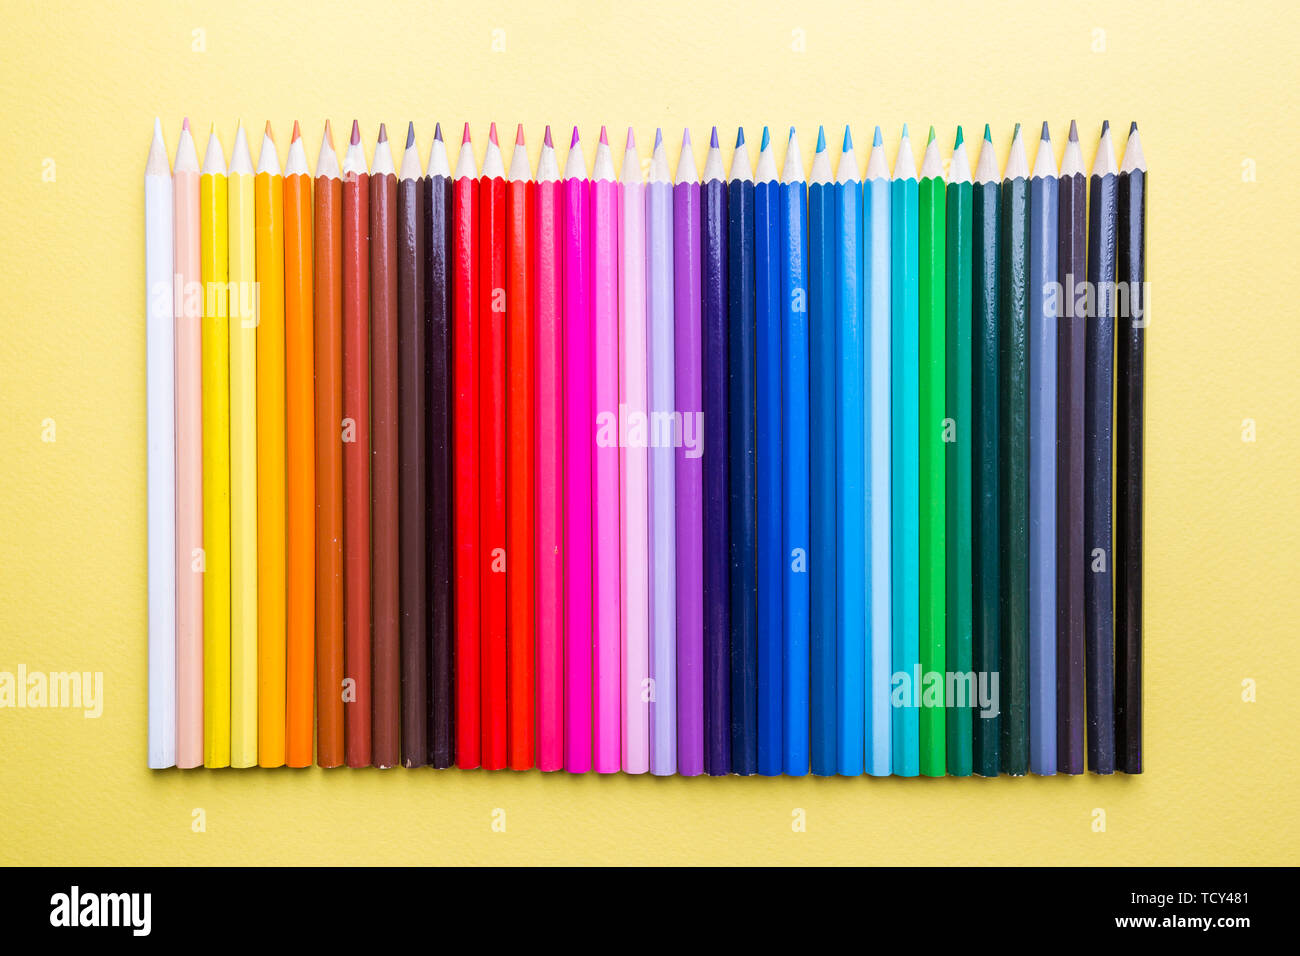 Pencils of various colors on a yellow background, top view with copy space, flat lay - Stock Image